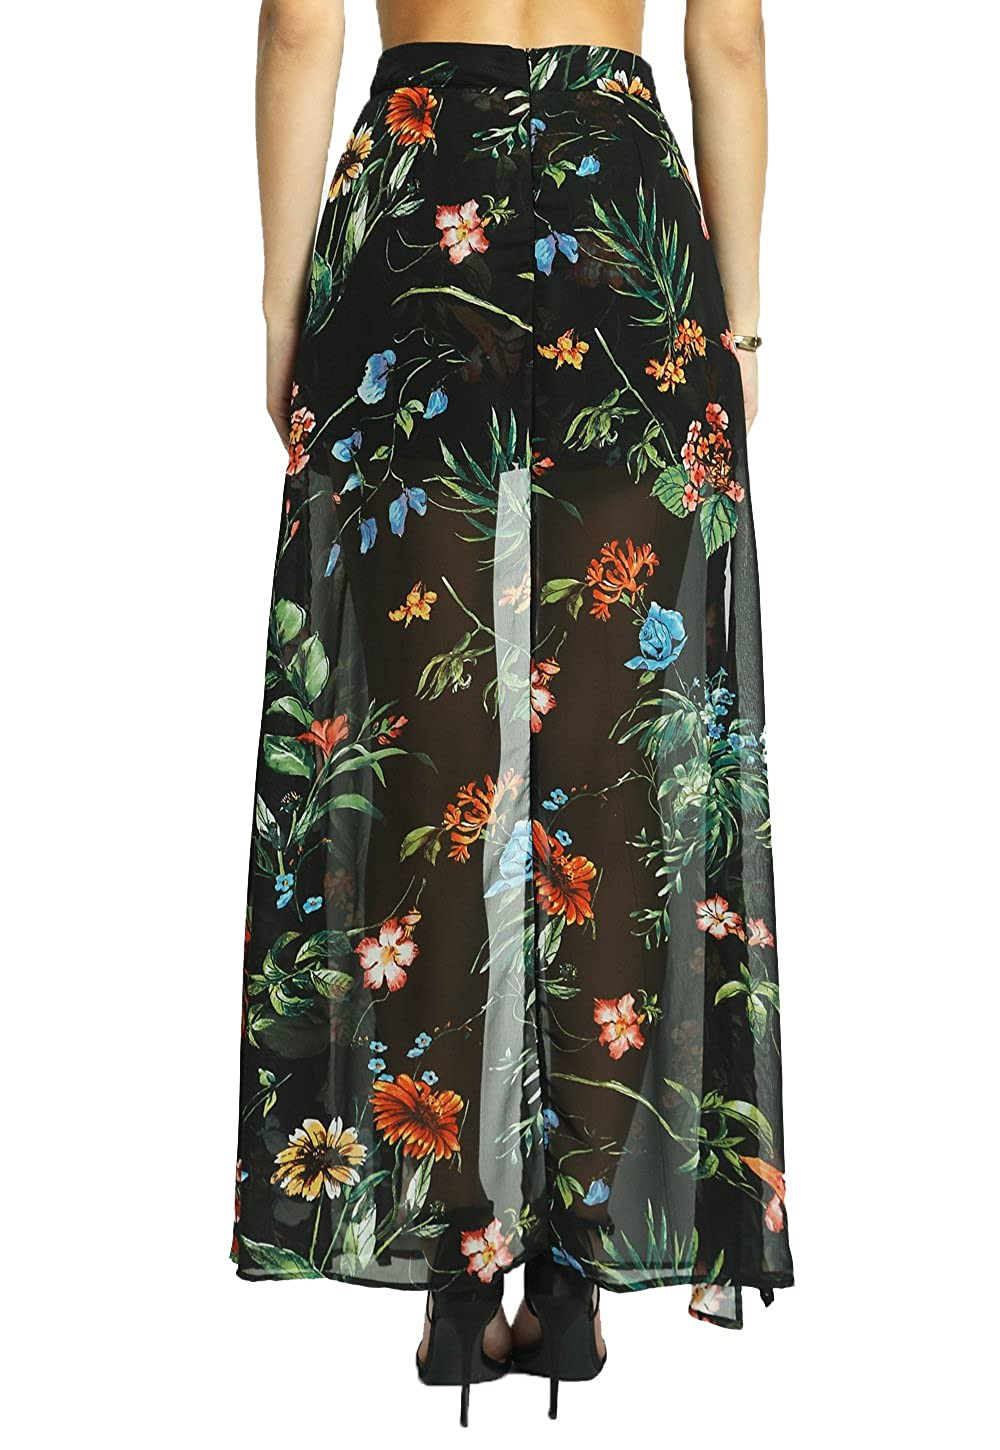 42d295f660d5 Amazon.com: SANS SOUCI Floral Maxi Skirt Overlay Shorts: Clothing